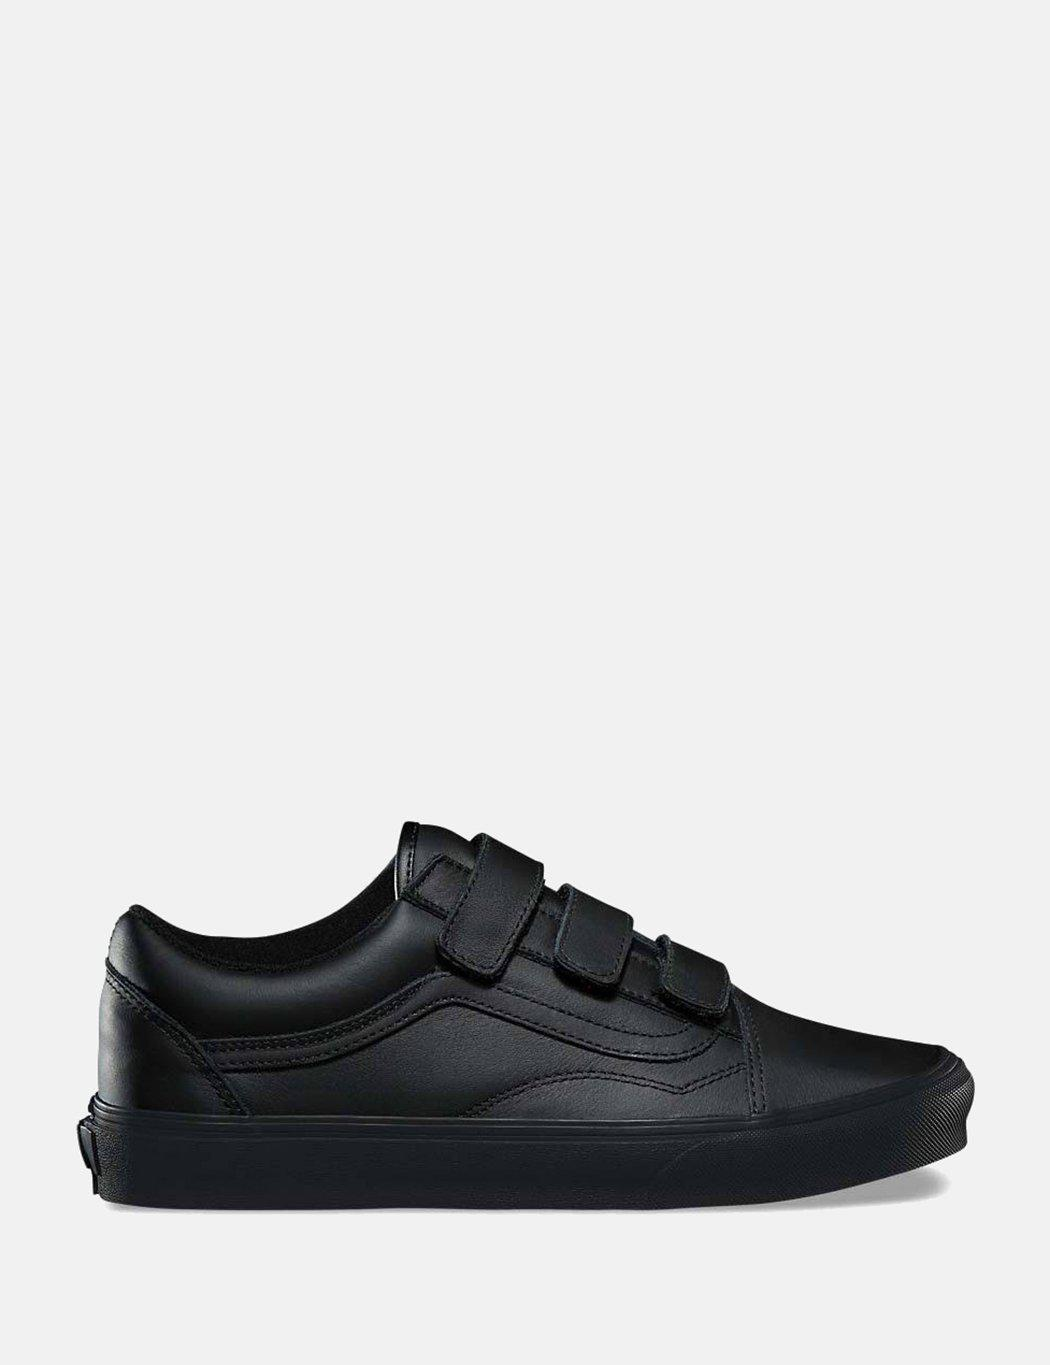 f1a490577a0f Lyst - Vans Old Skool Velcro (mono Leather) in Black for Men